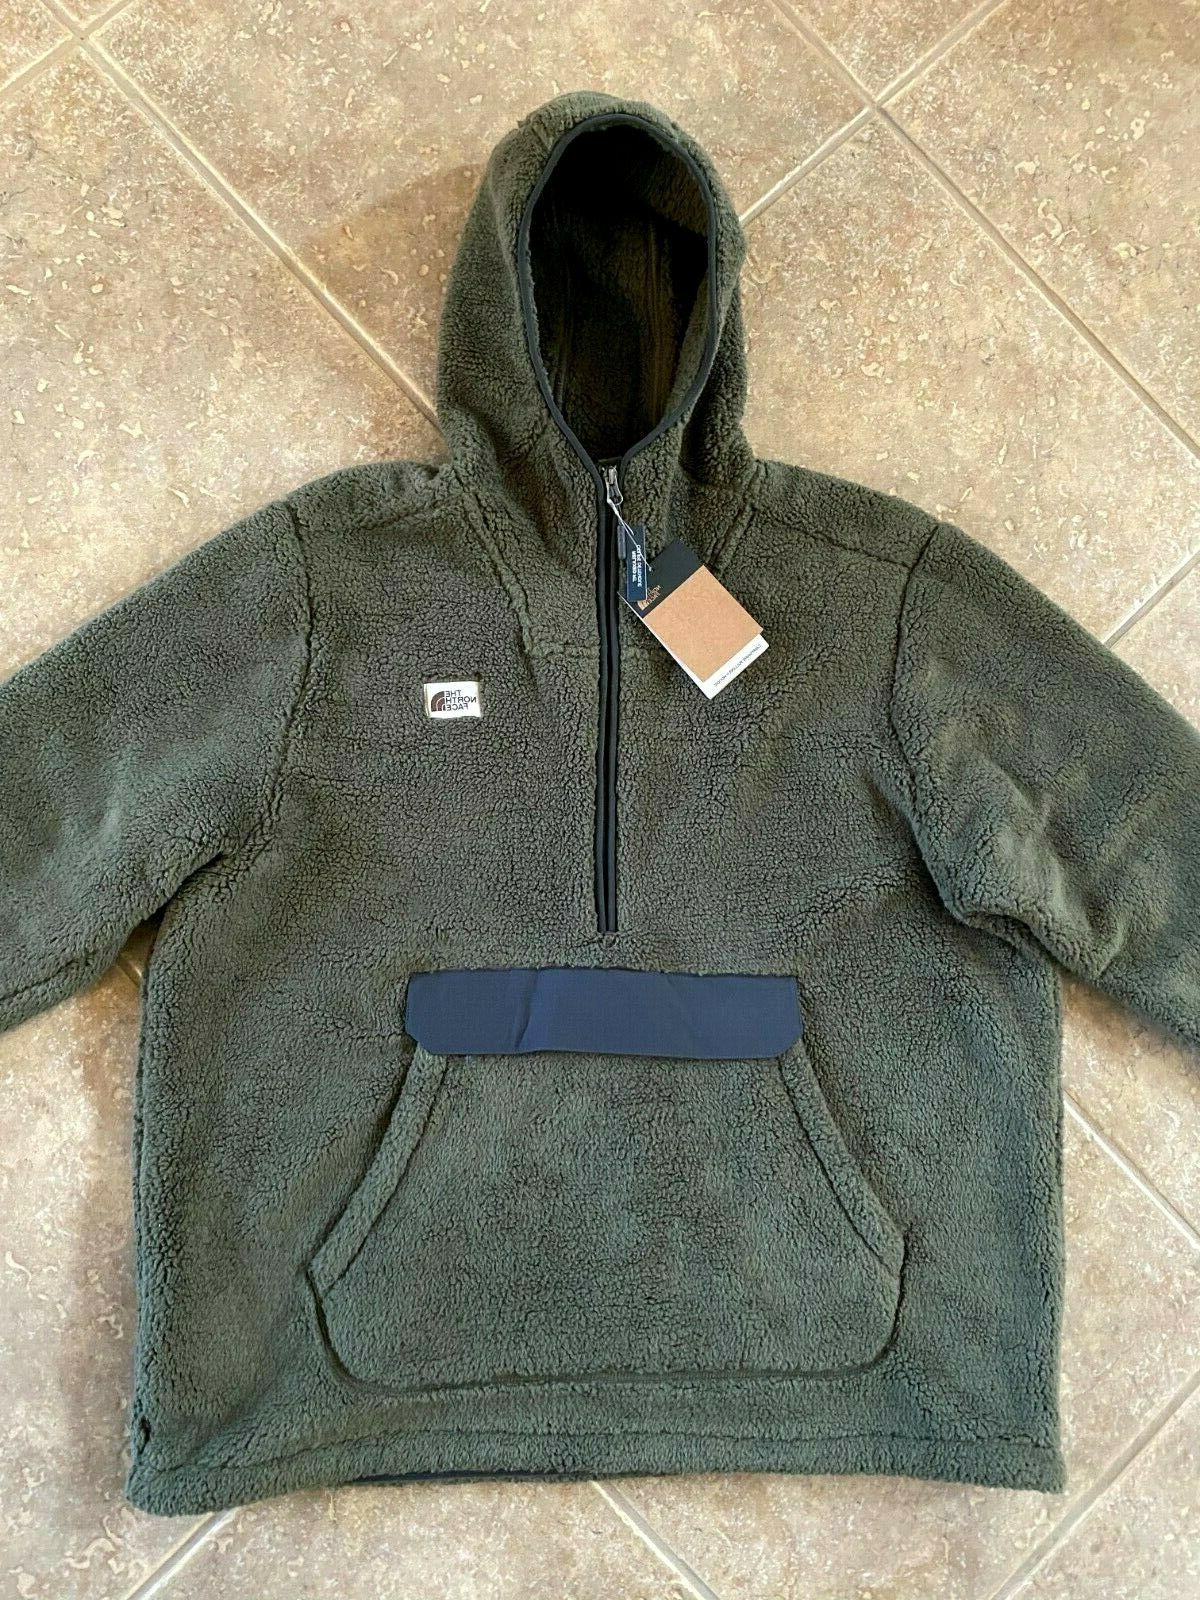 The North Sherpa XL $149